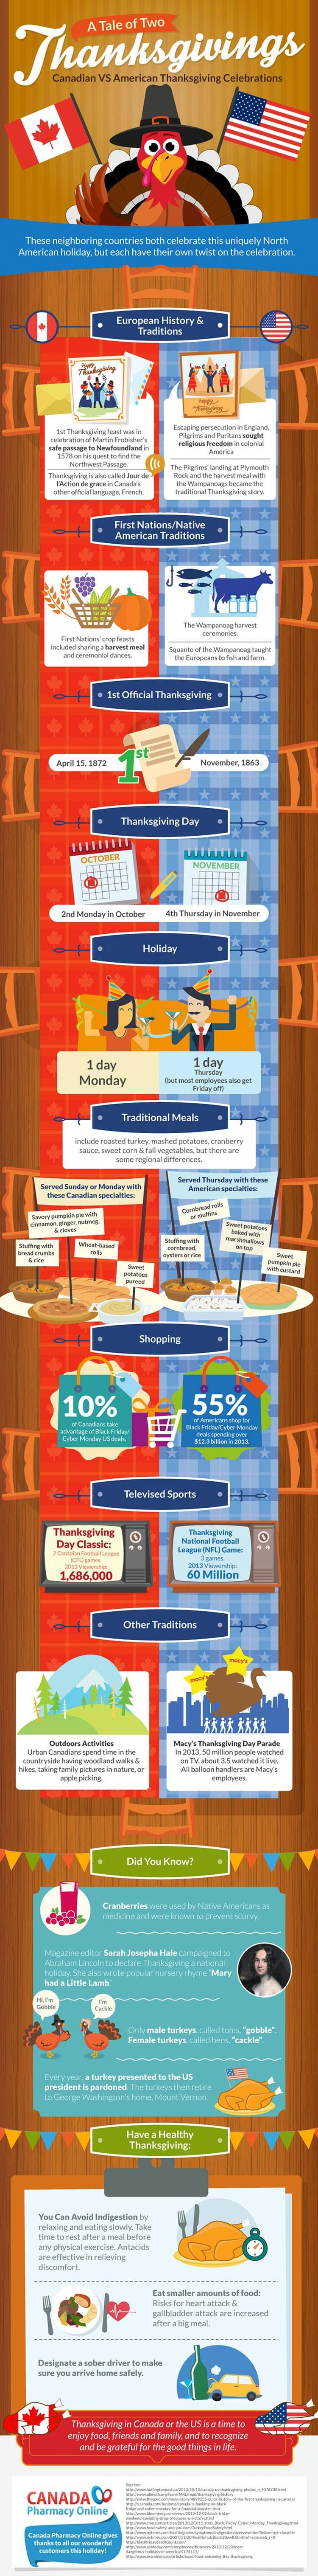 Infographic: A tale of 2 Thanksgivings - Canadian vs American Thanksgiving Celebrations